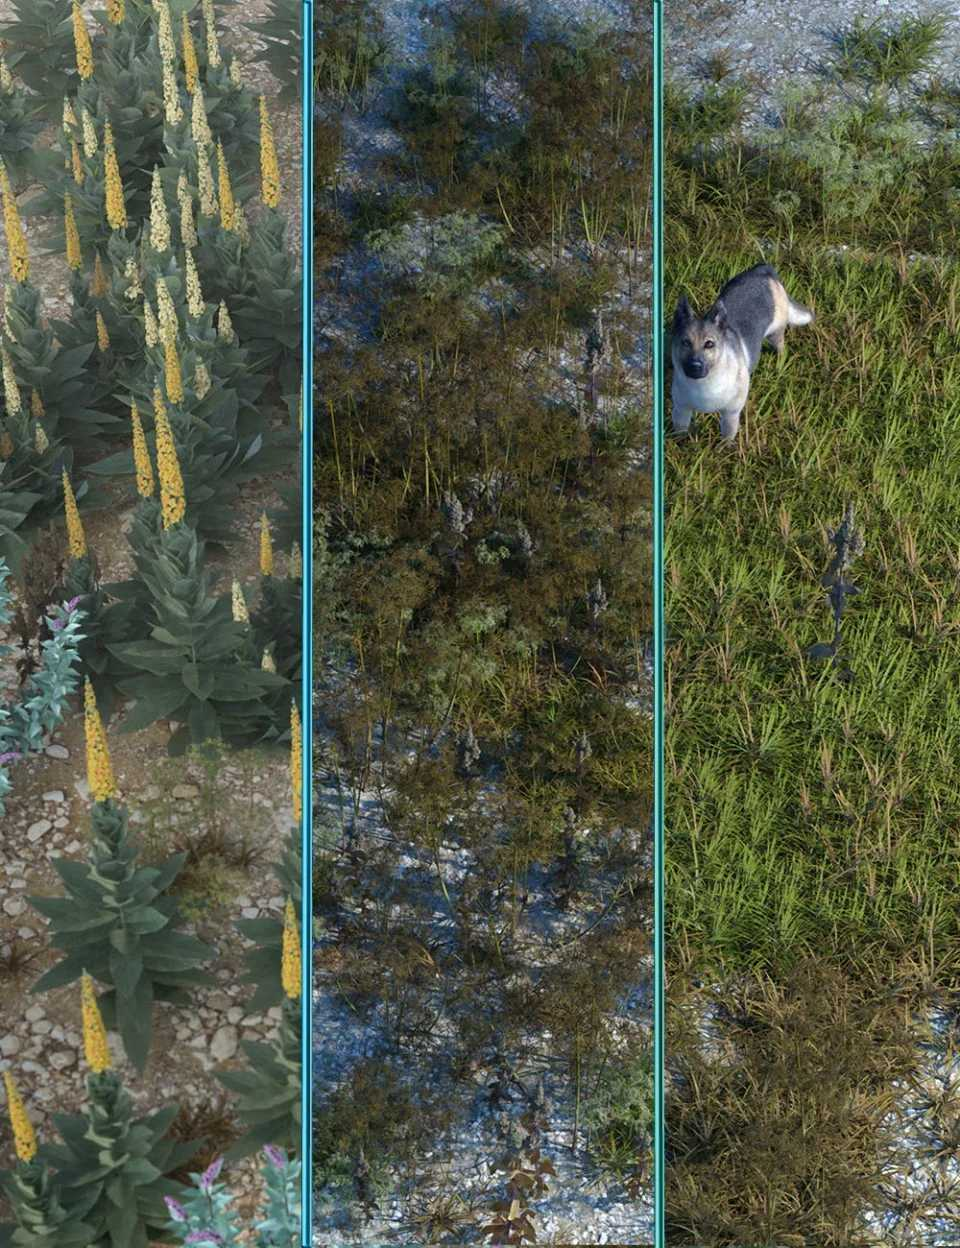 Wasteland Plants and Weeds – Low Resolution Instant Ecosystems